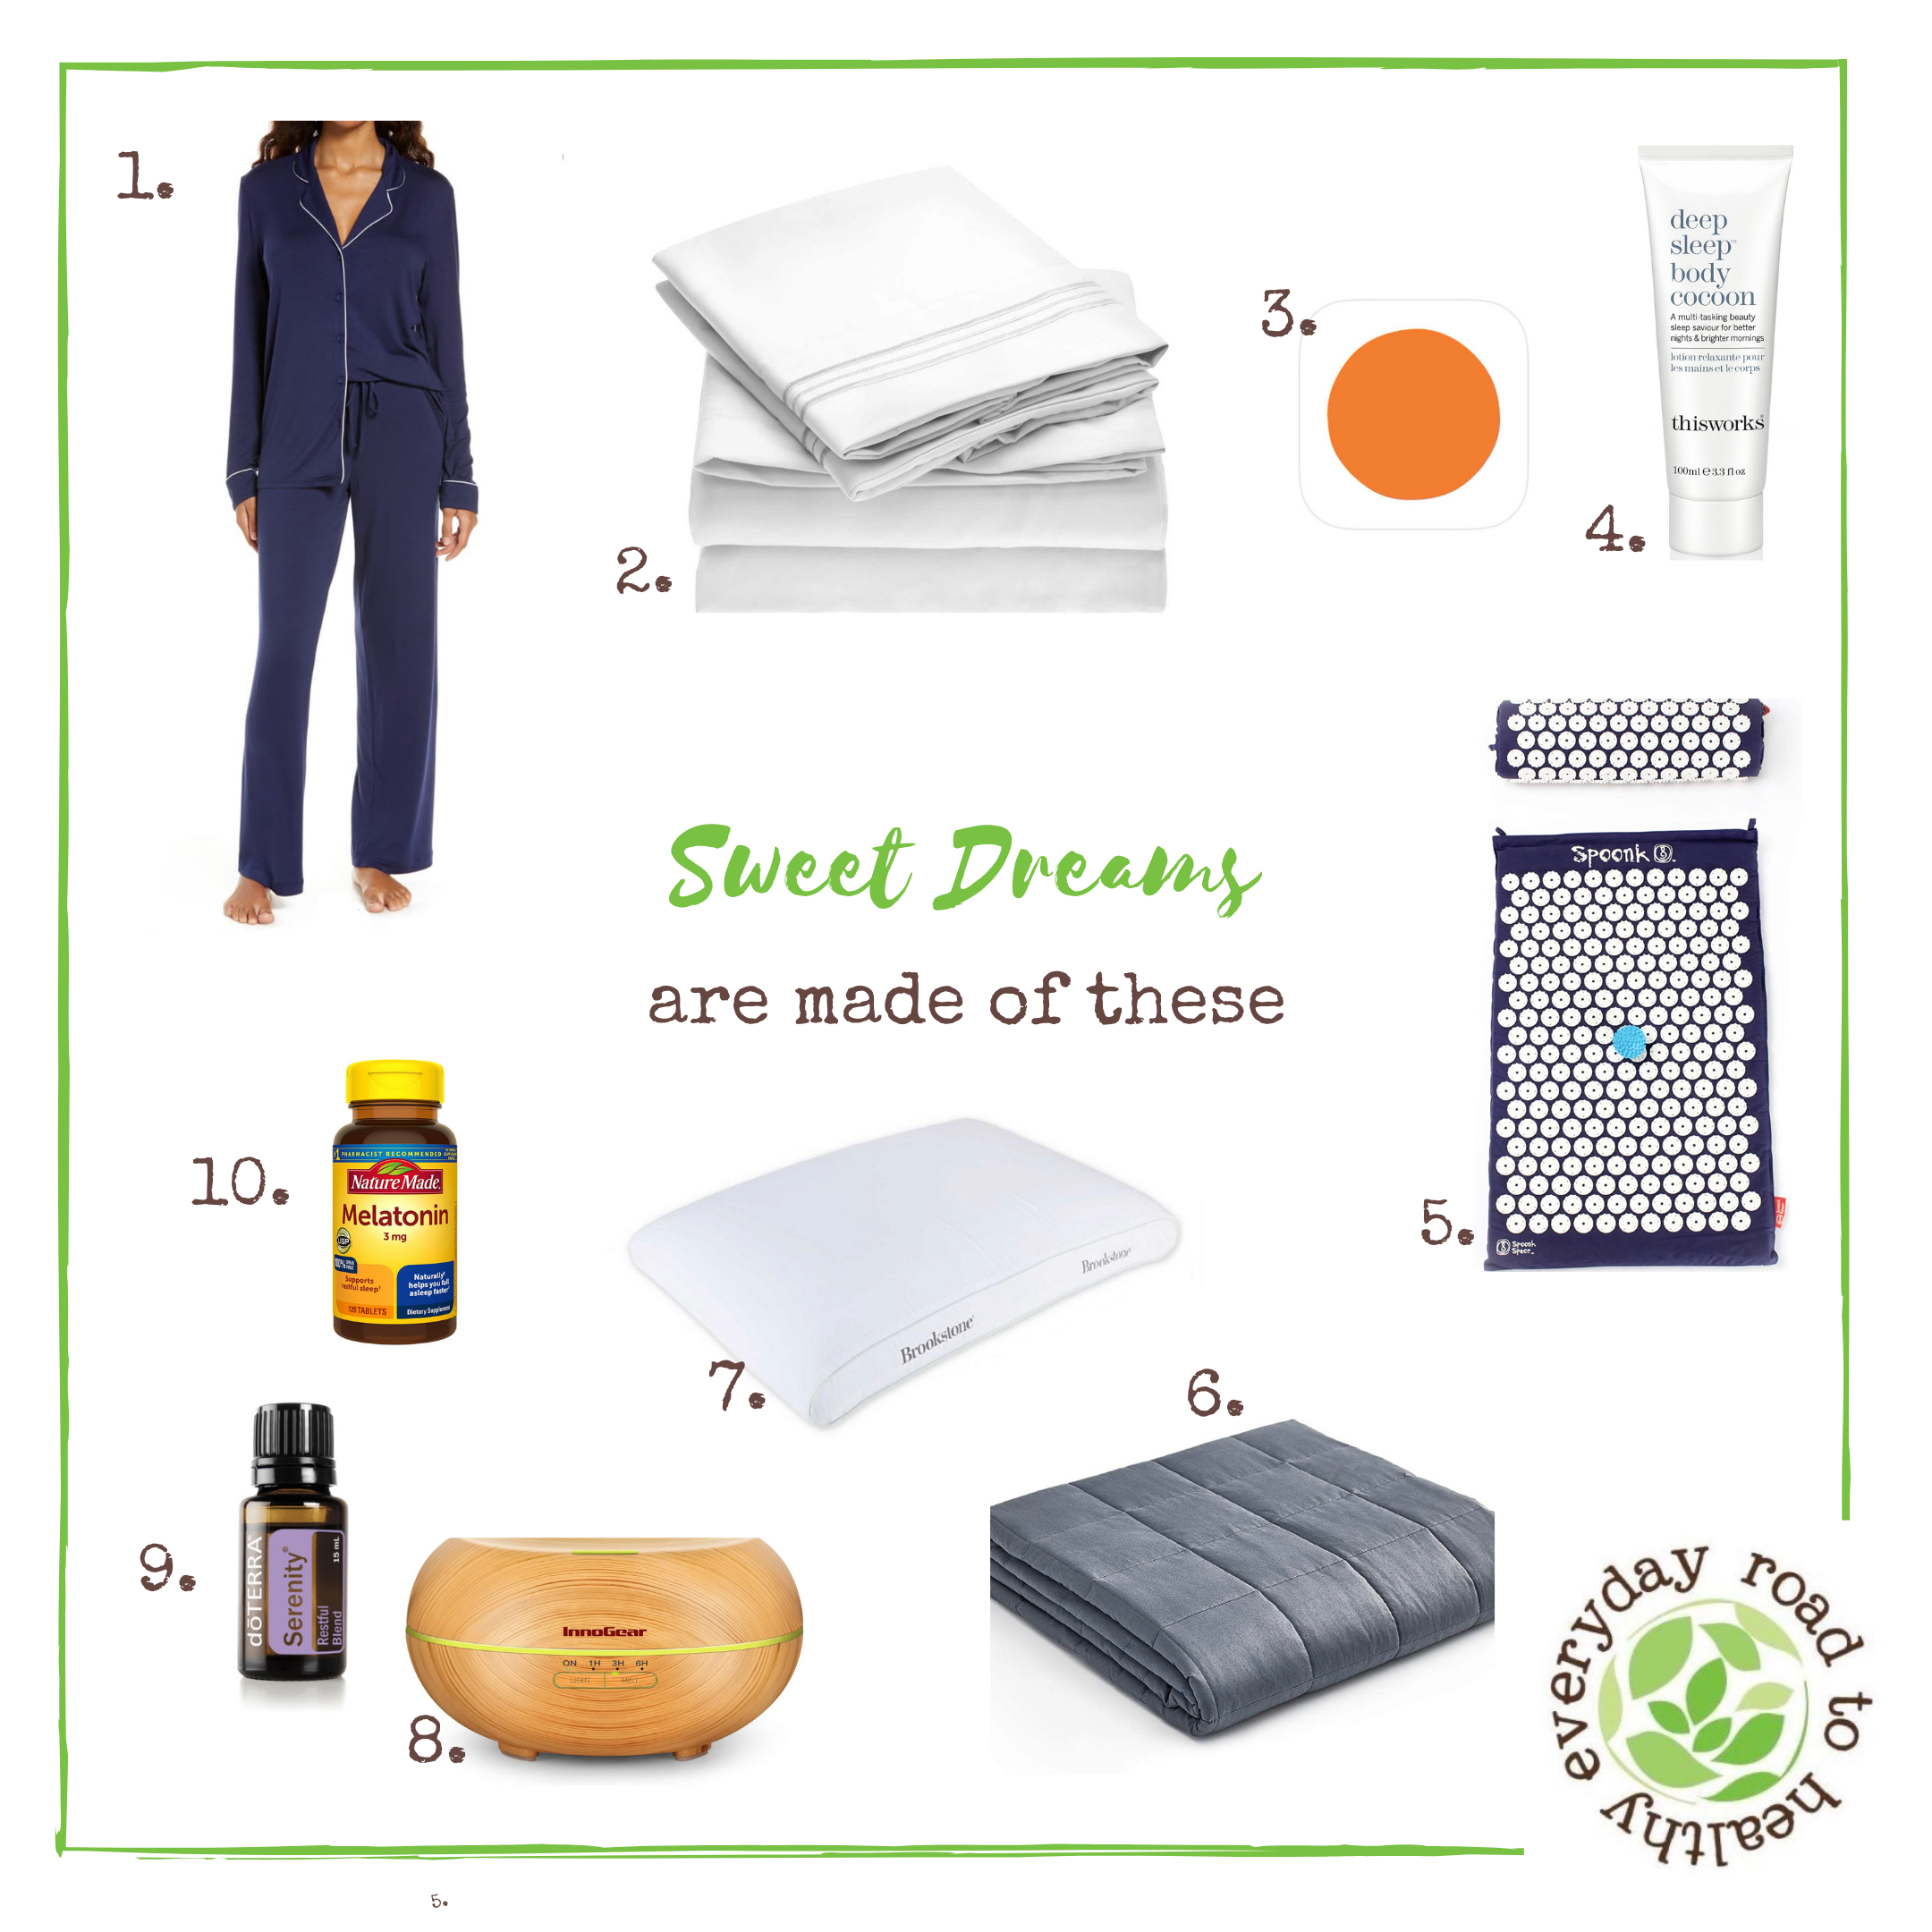 sleep product recommendations